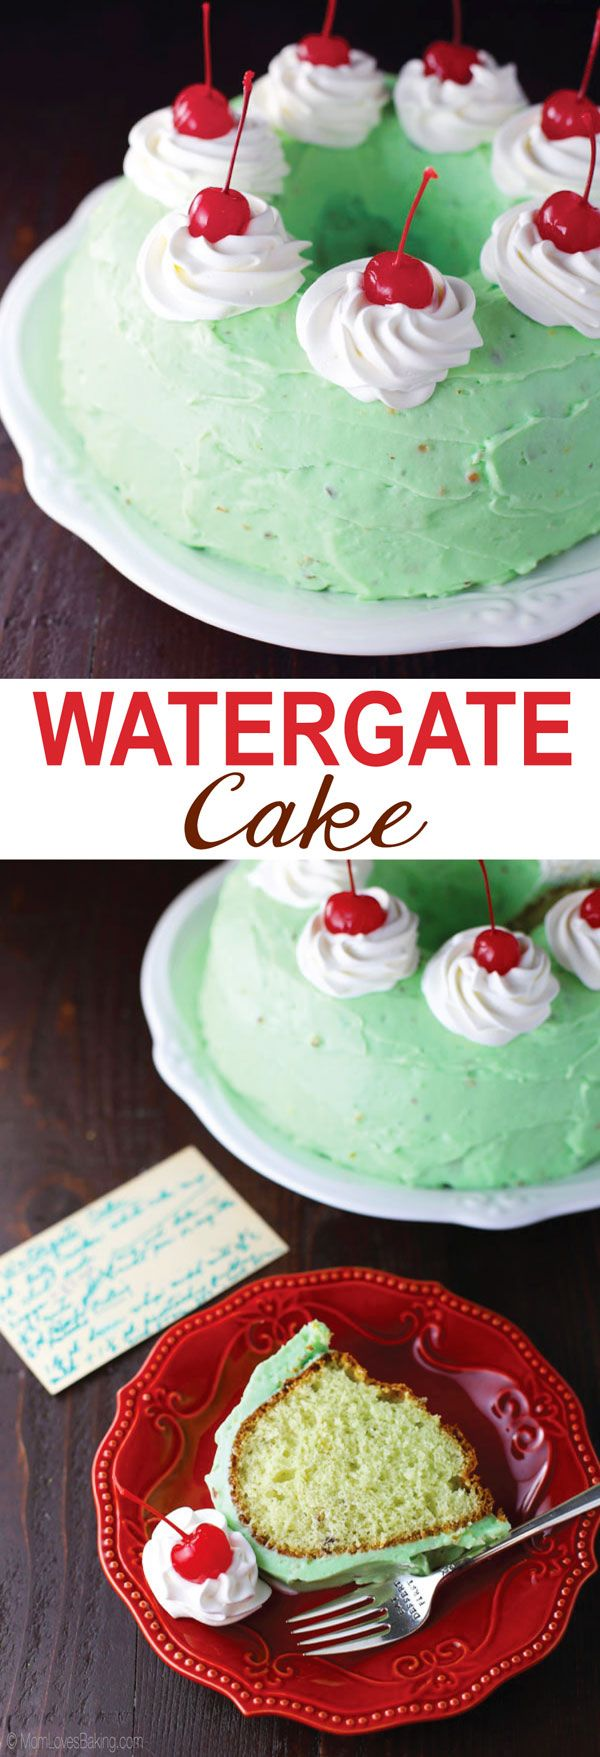 Watergate Cake is a pistachio flavored Bundt Cake with pistachio frosting. It was named Watergate Cake because of the 1970s scandal (the cake has a 'cover-up' icing and is full of nuts).